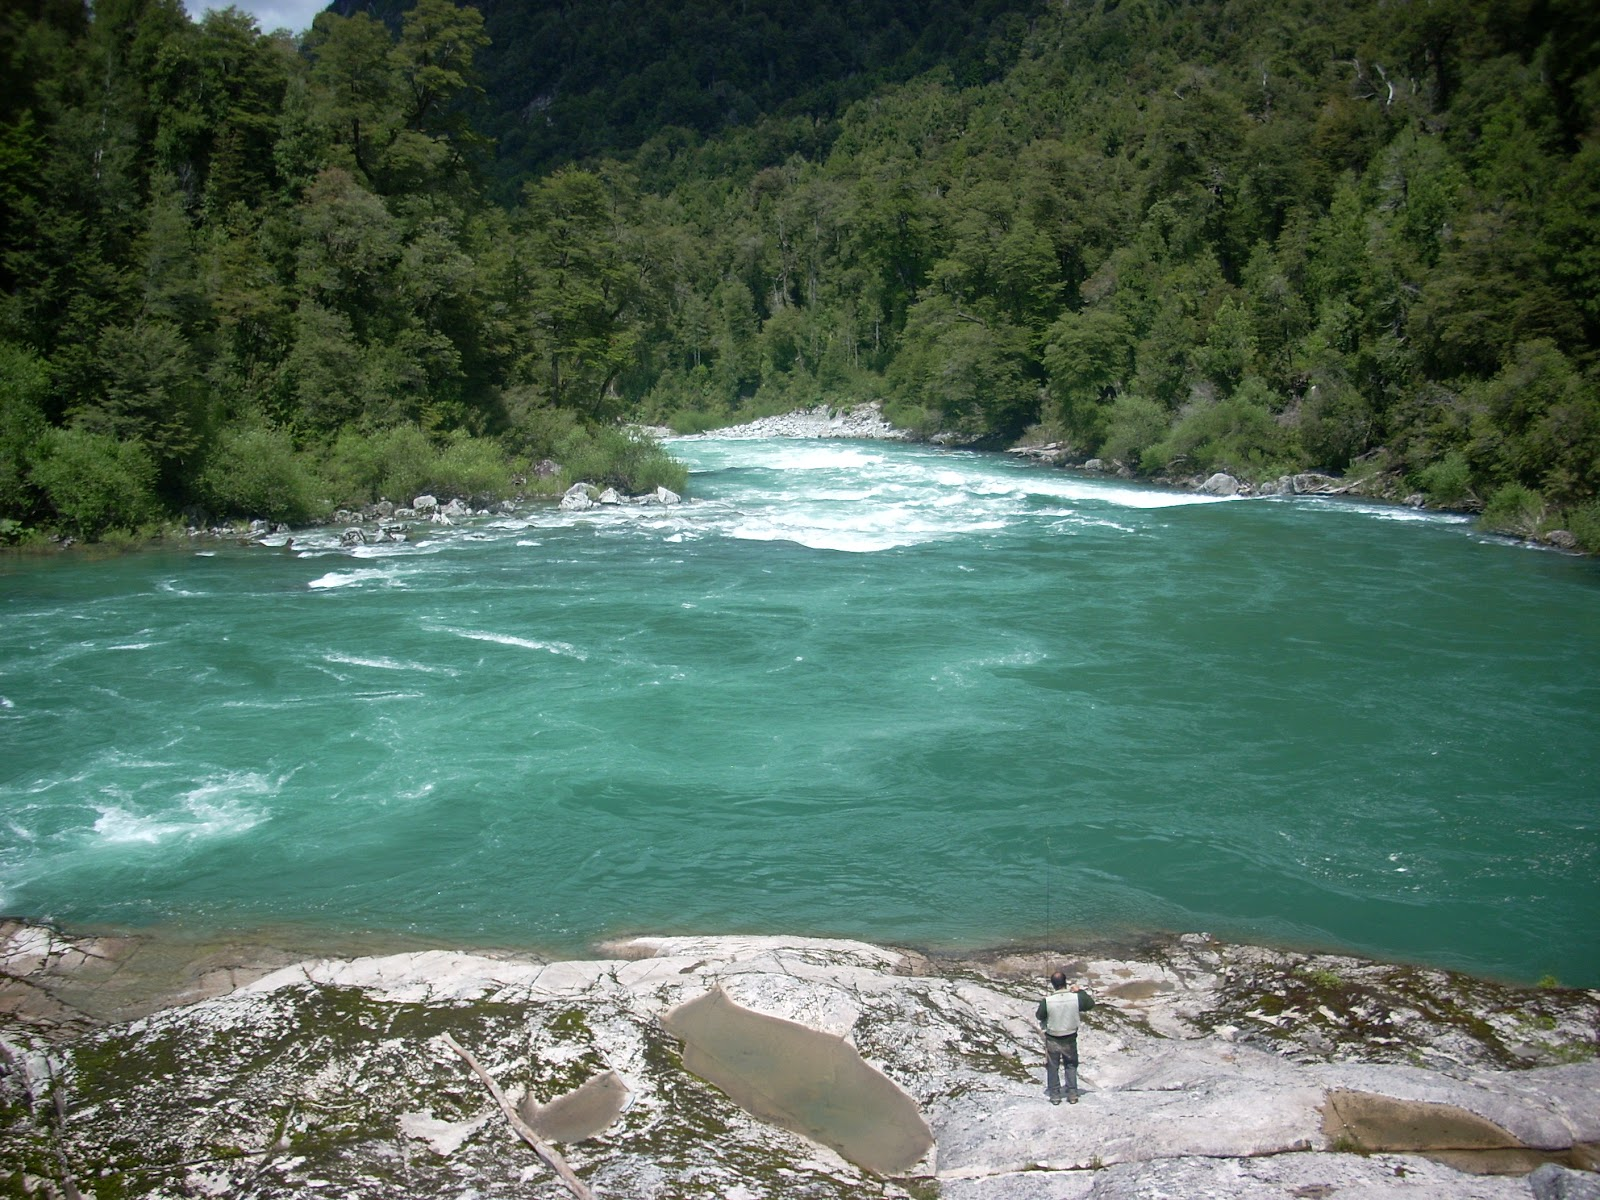 Its a big river - note the fisherman